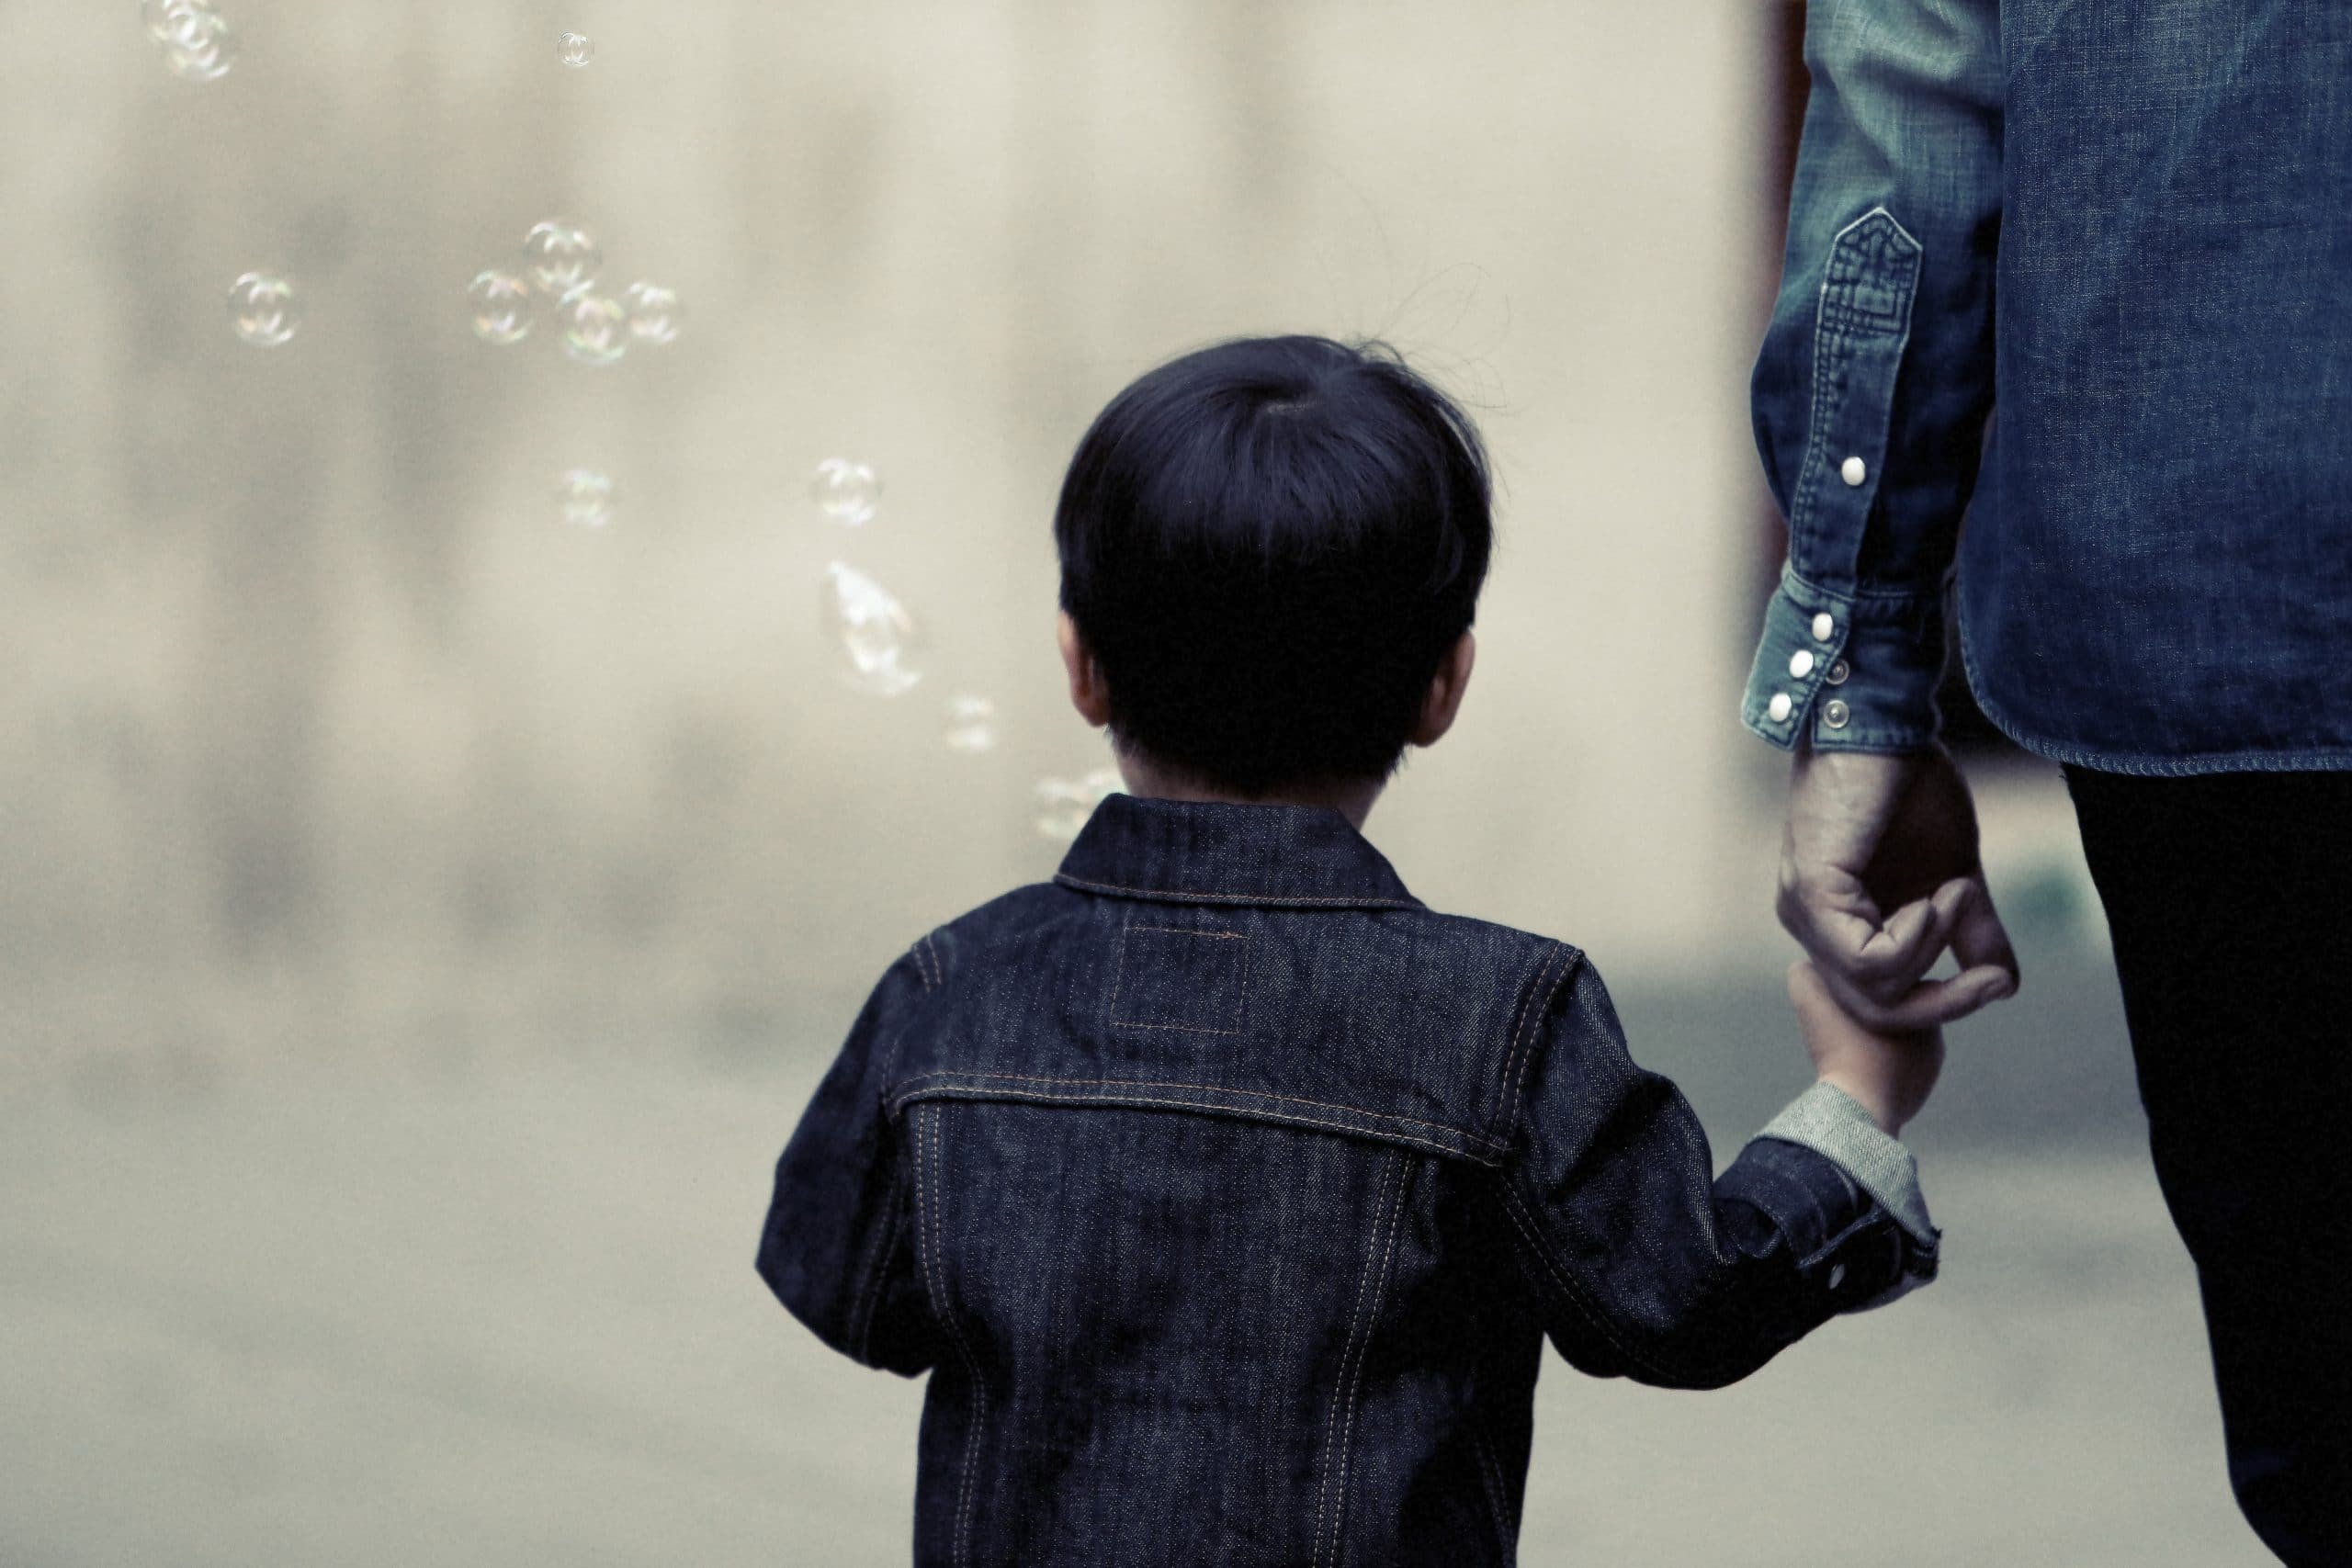 small child holding parent's hand